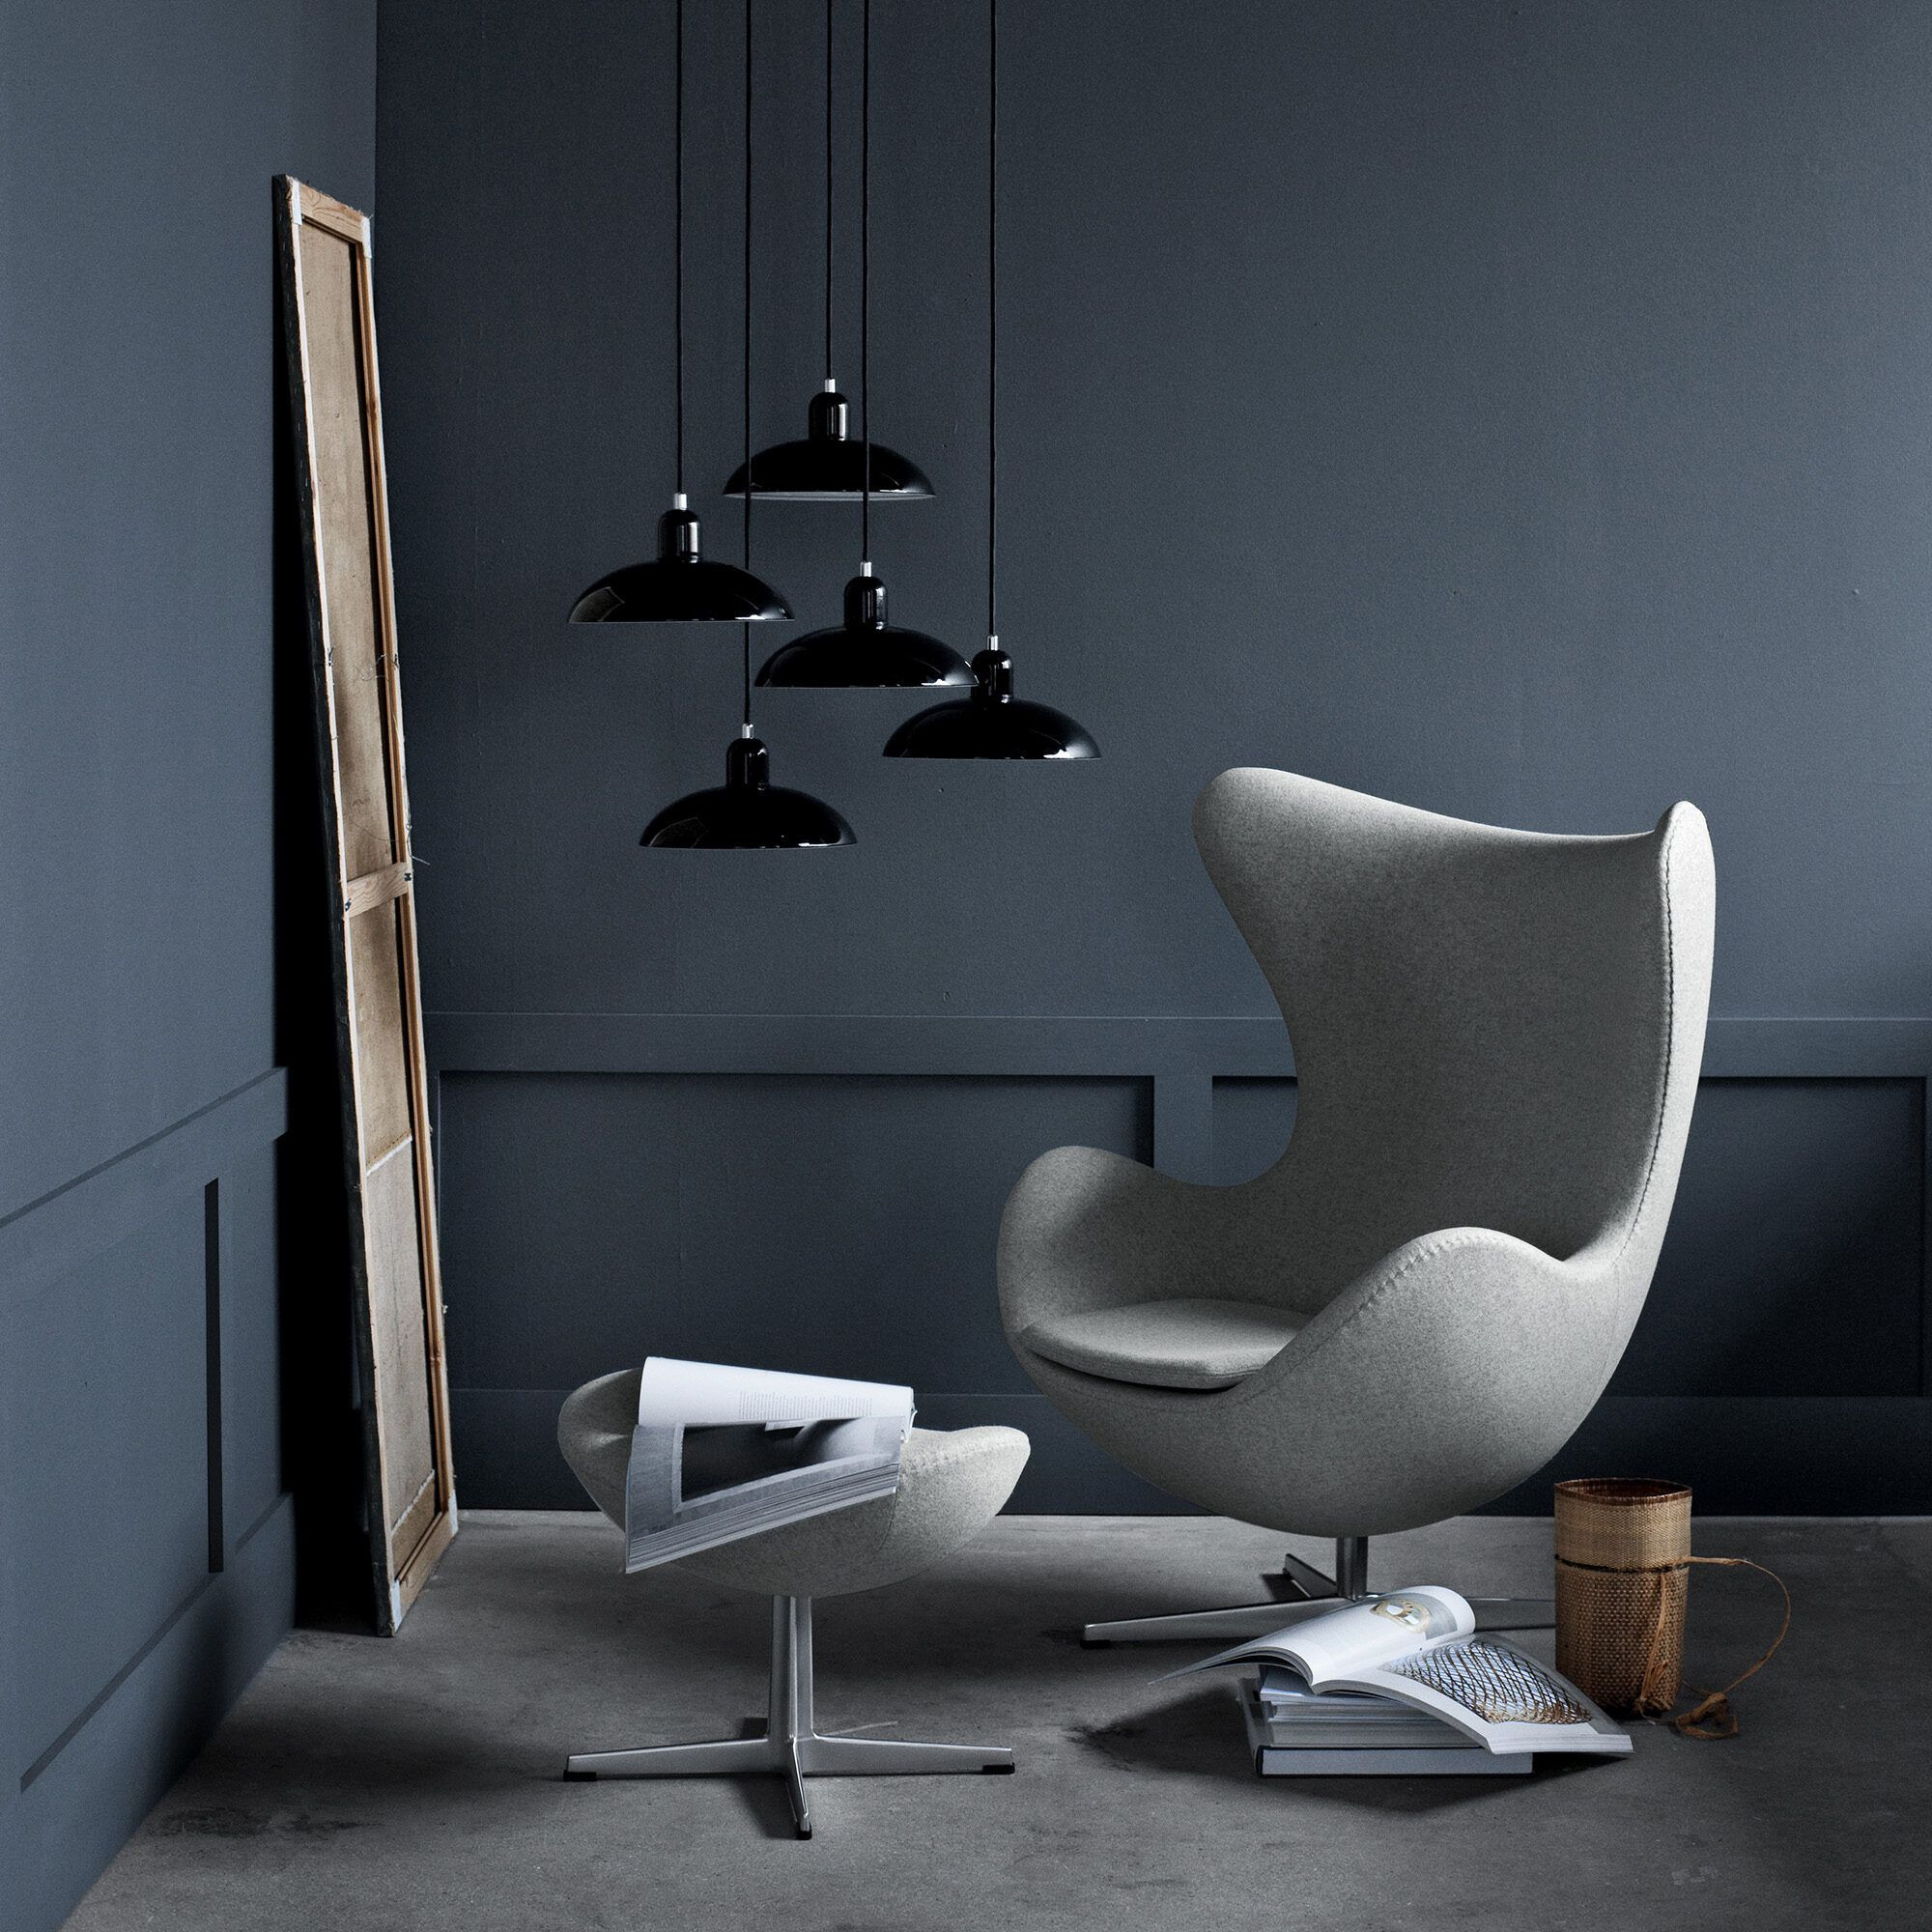 Produced at Fritz Hansen Together With Many Of The Greats